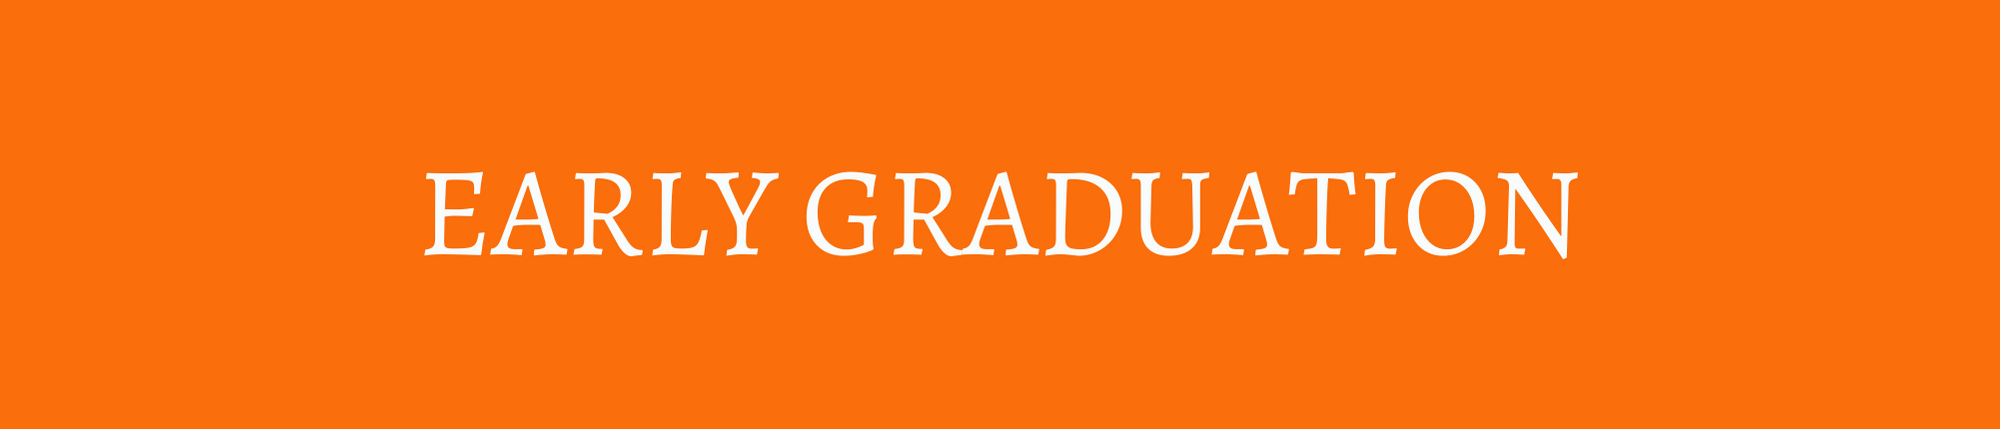 orange banner with white lettering